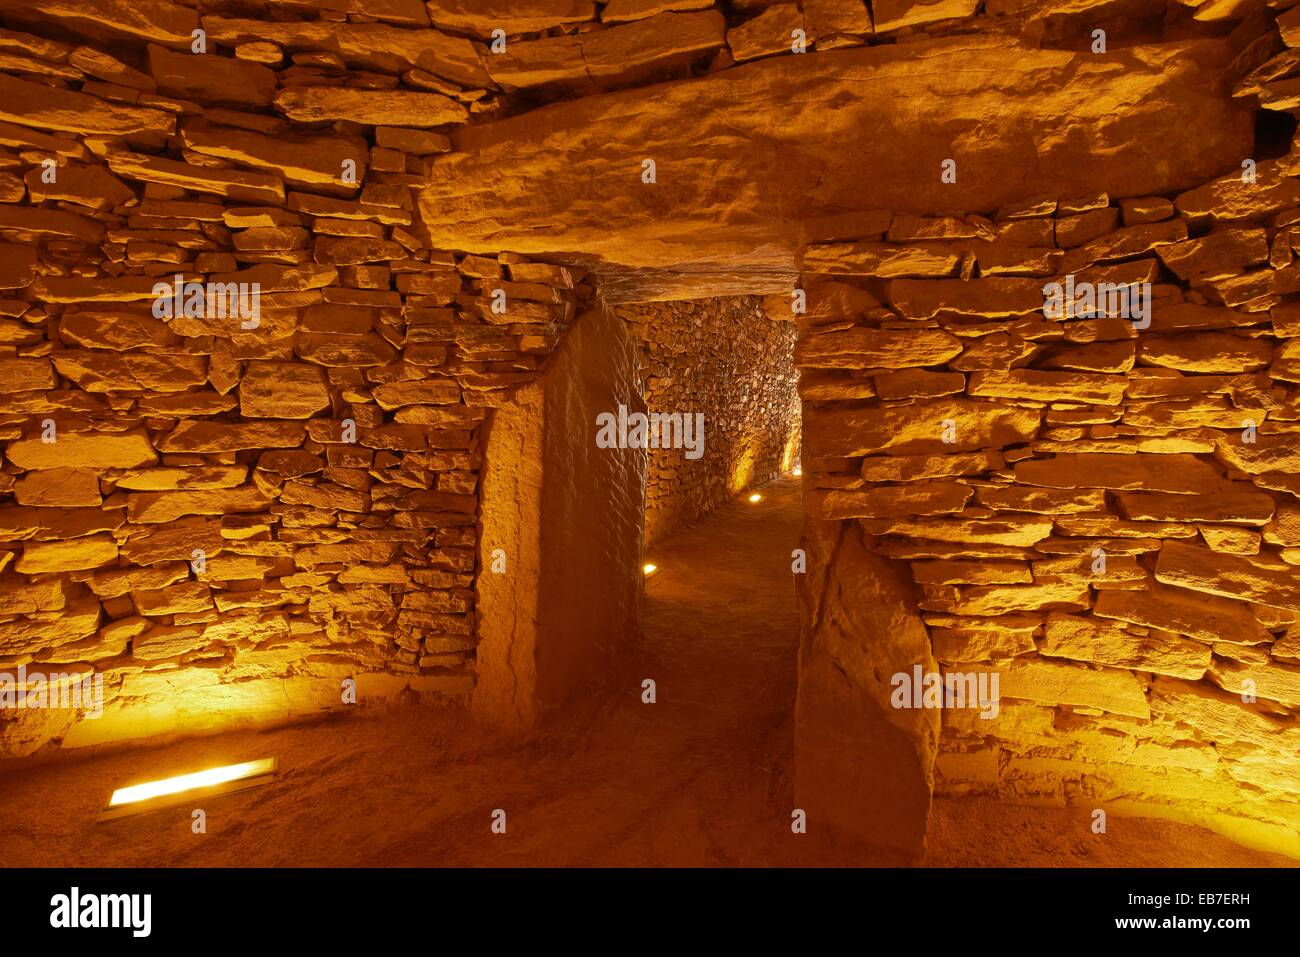 El Romeral megalithic dolmen, Antequera, Málaga province, Andalusia, Spain - Stock Image